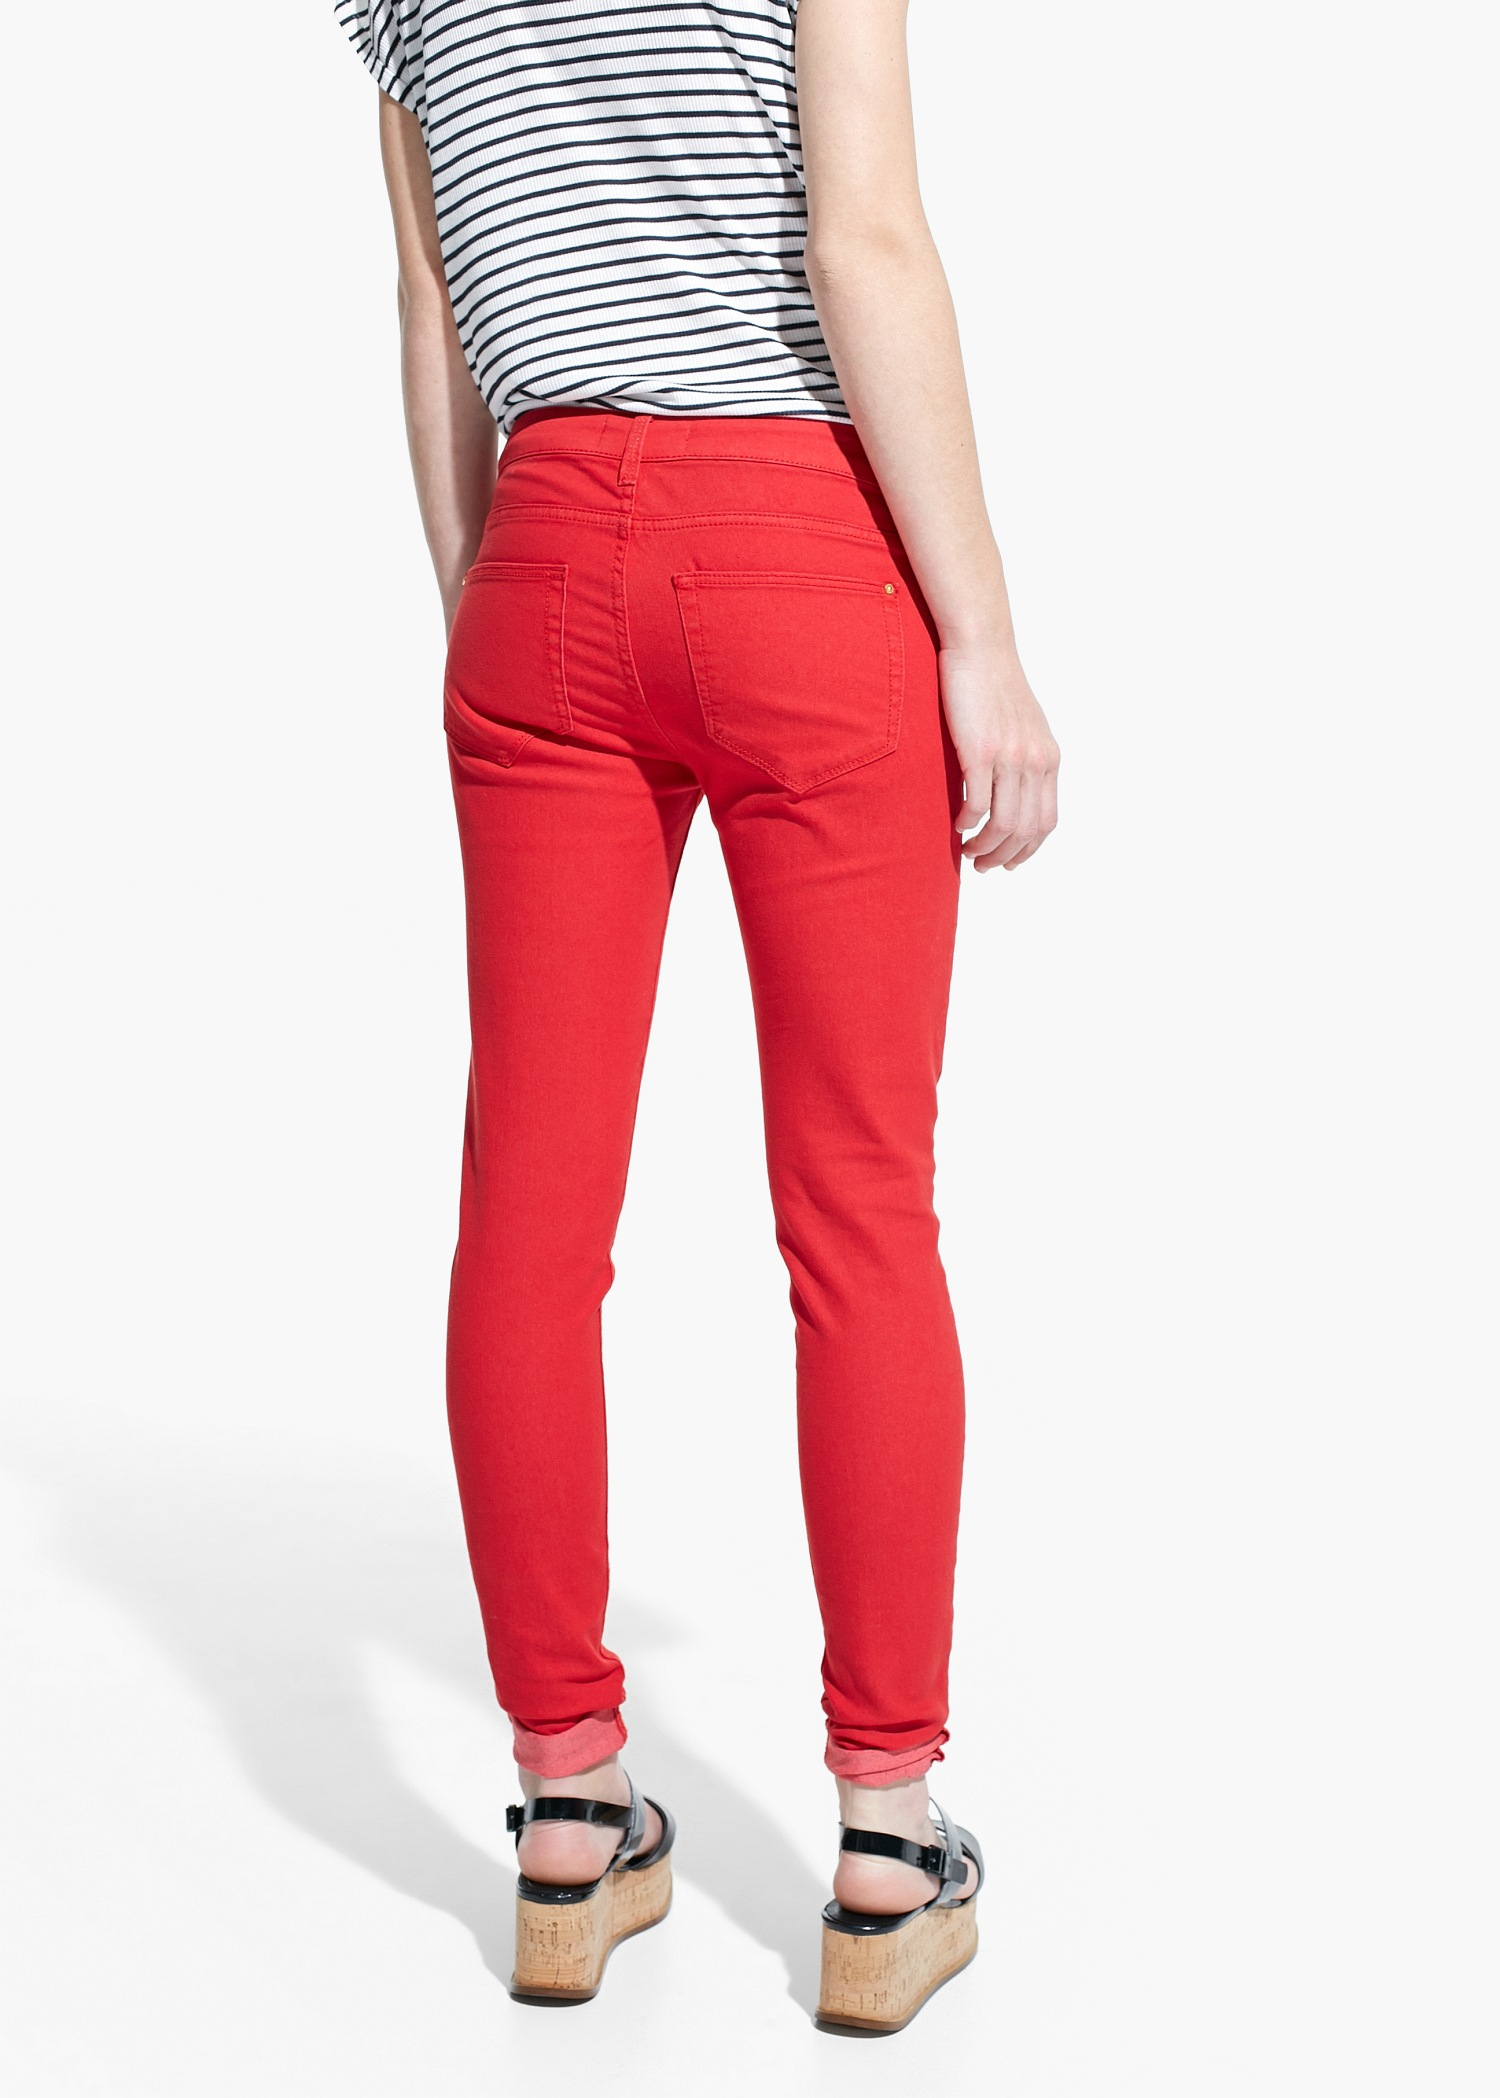 Mango Skinny Paty Jeans in Red